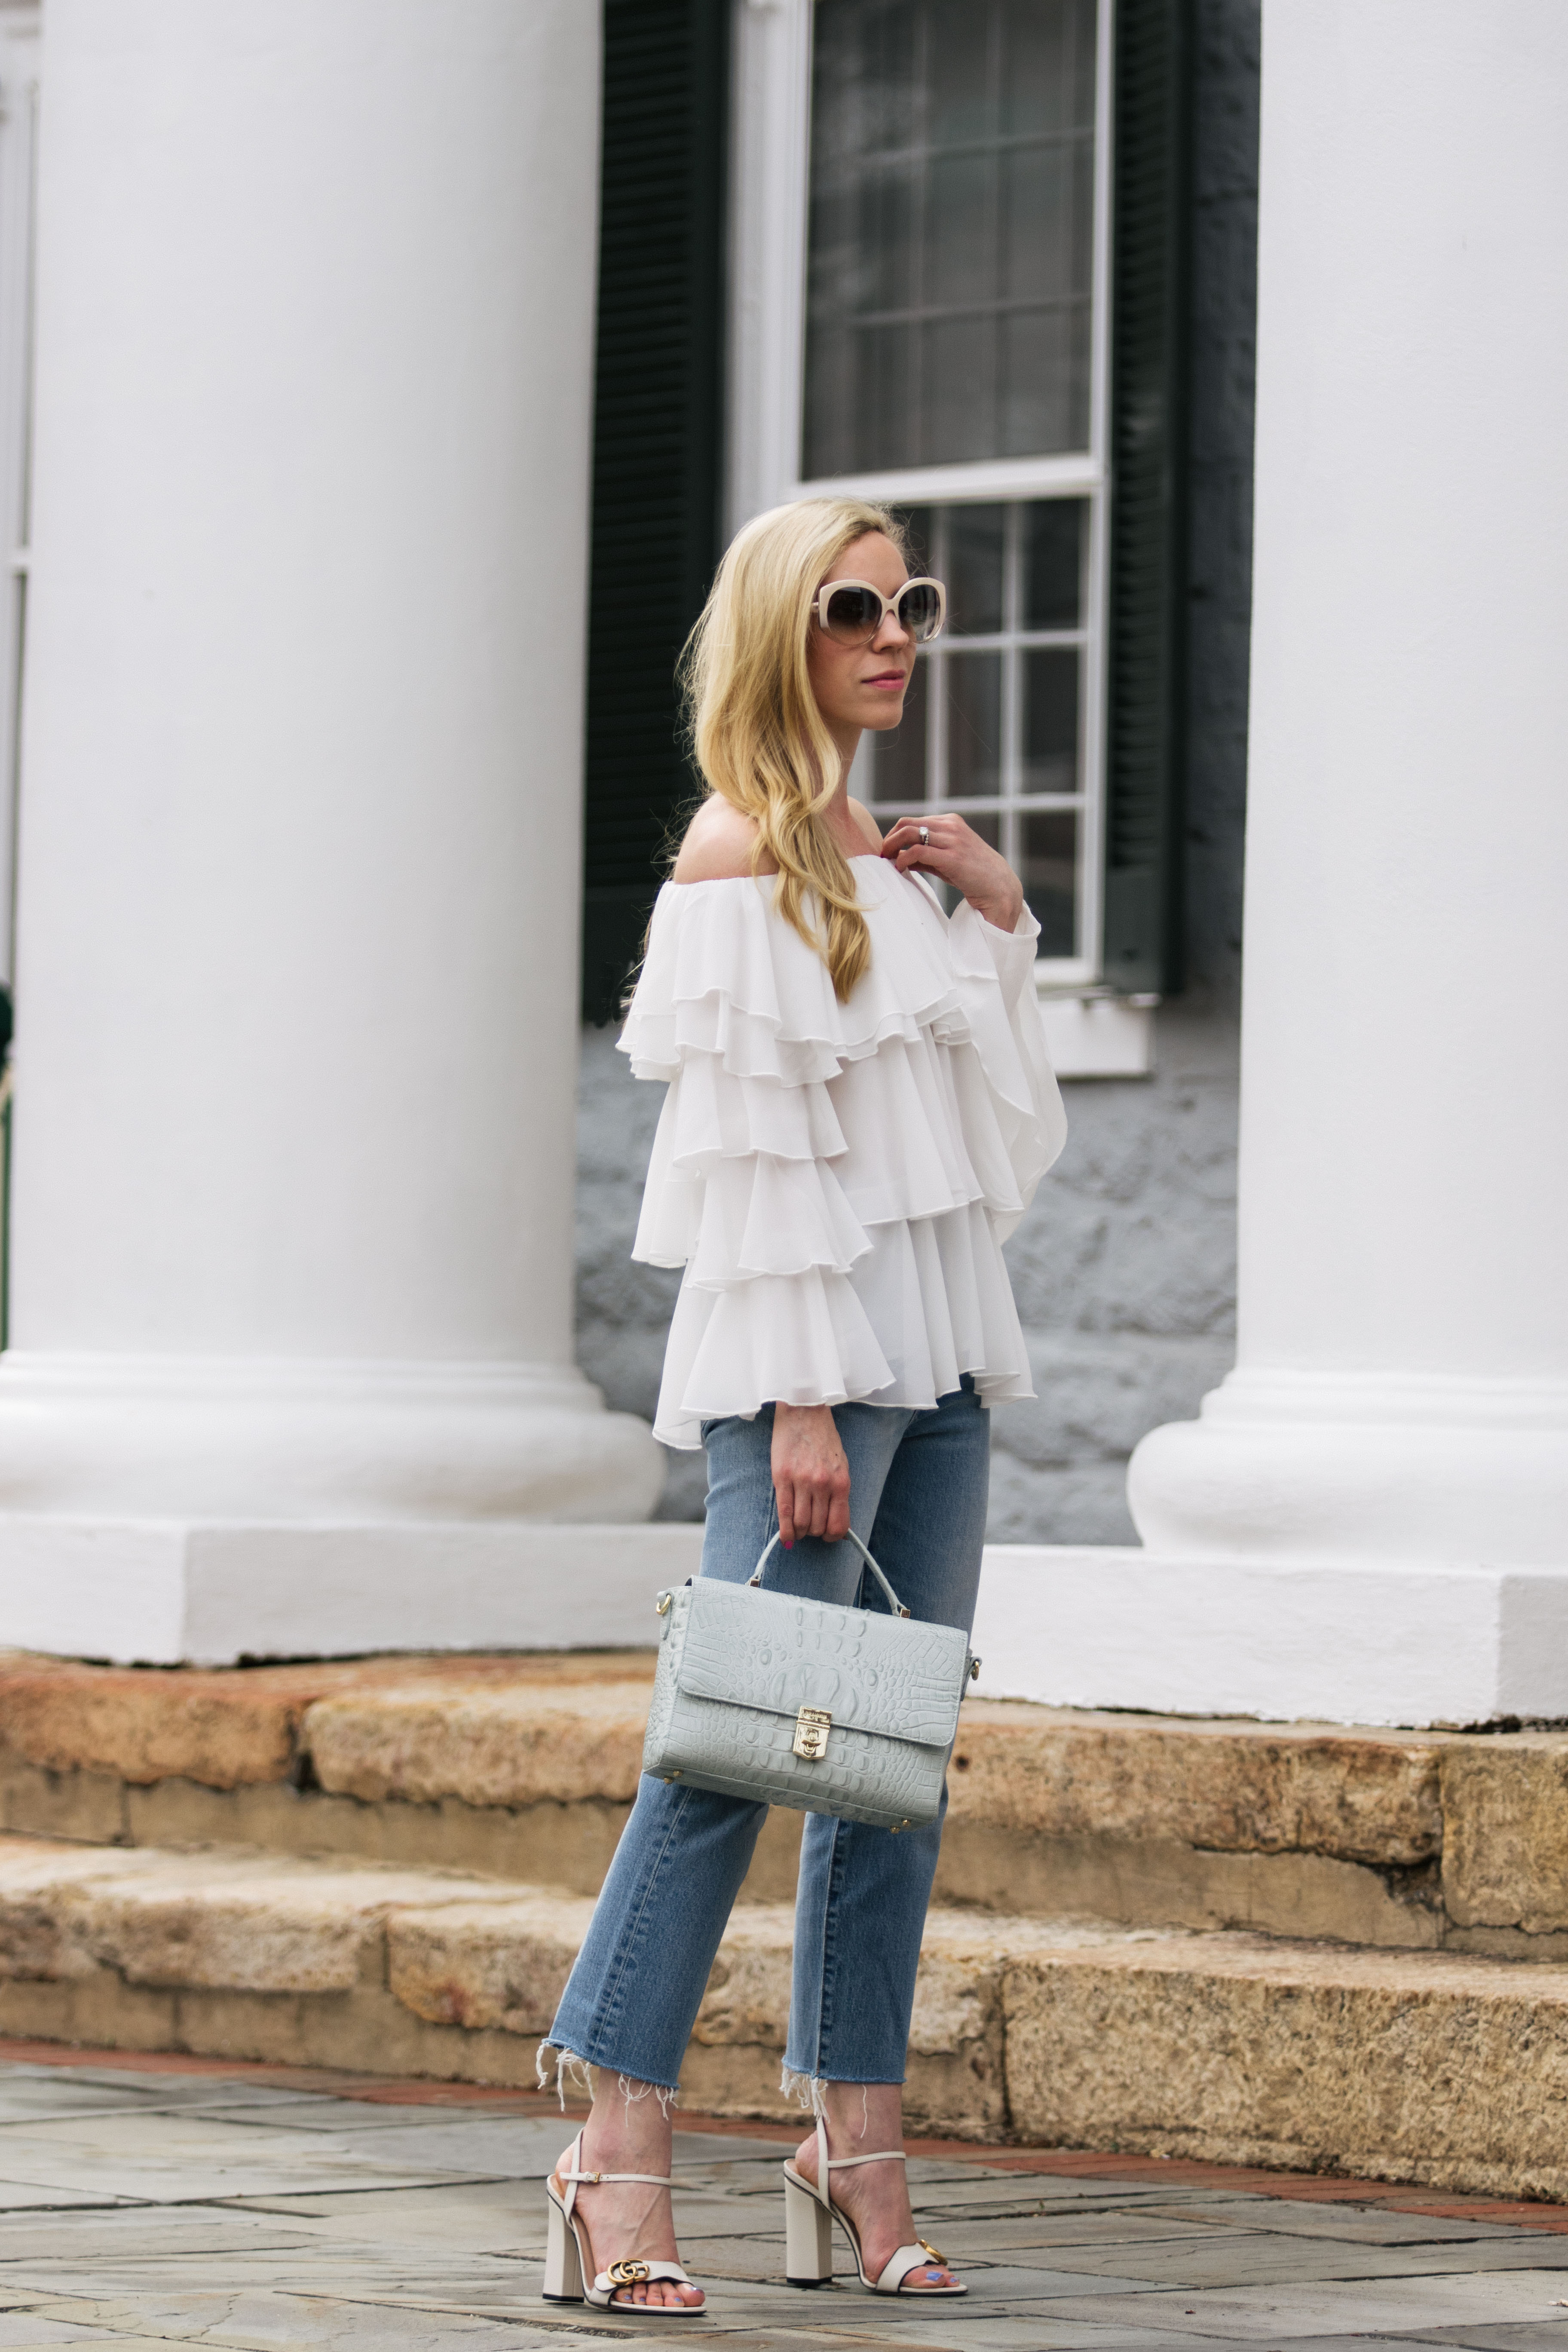 Ruffled: Off the Shoulder Top, Straight Leg Jeans & Block